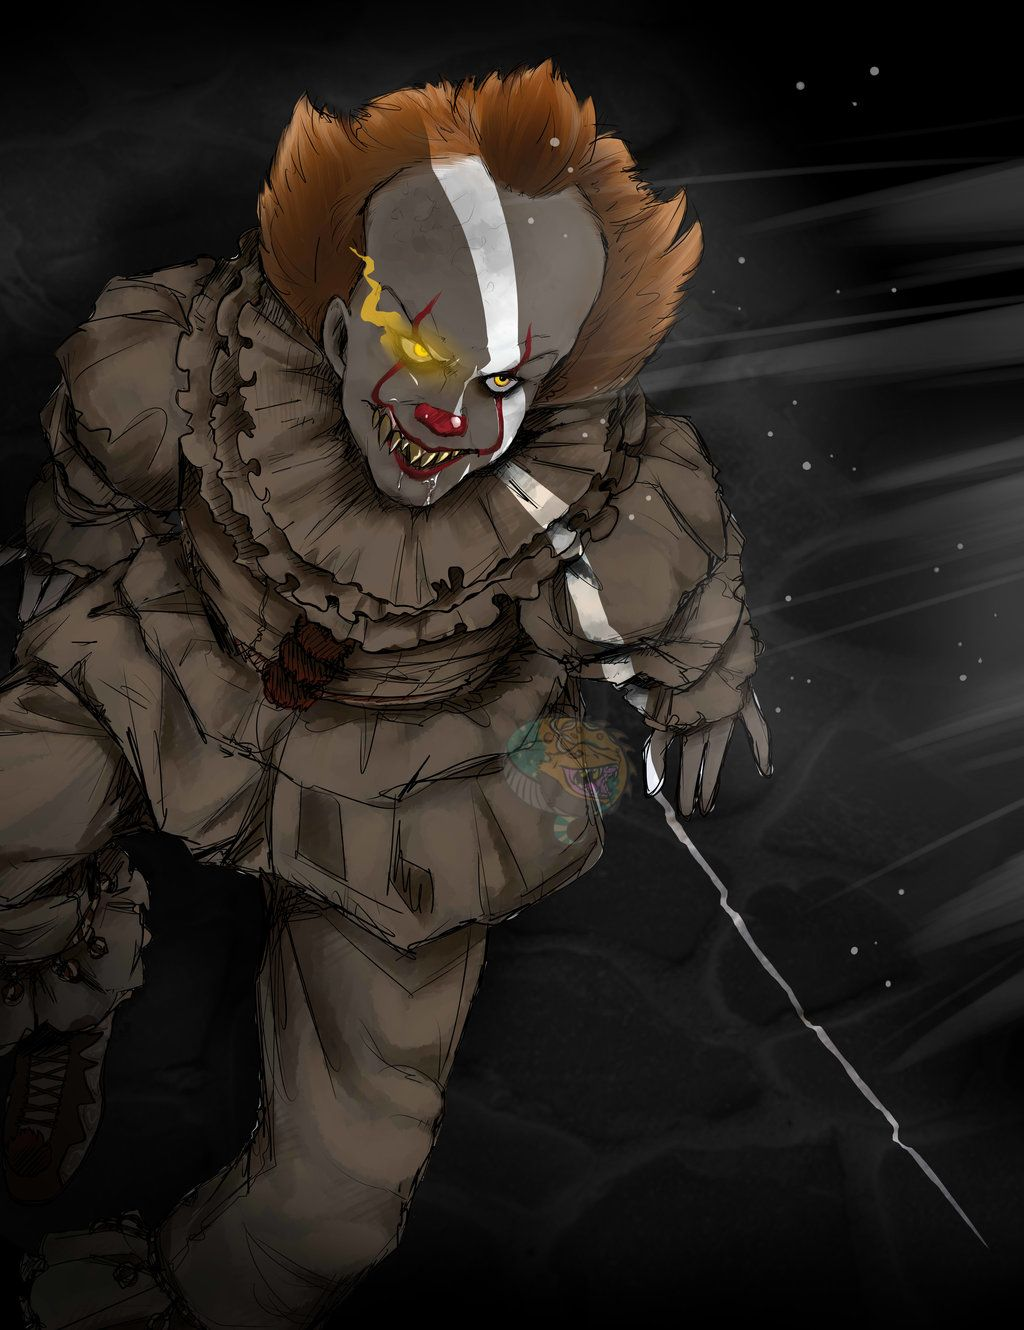 Pennywise Live Wallpaper Desktop Background Pennywise Pennywise